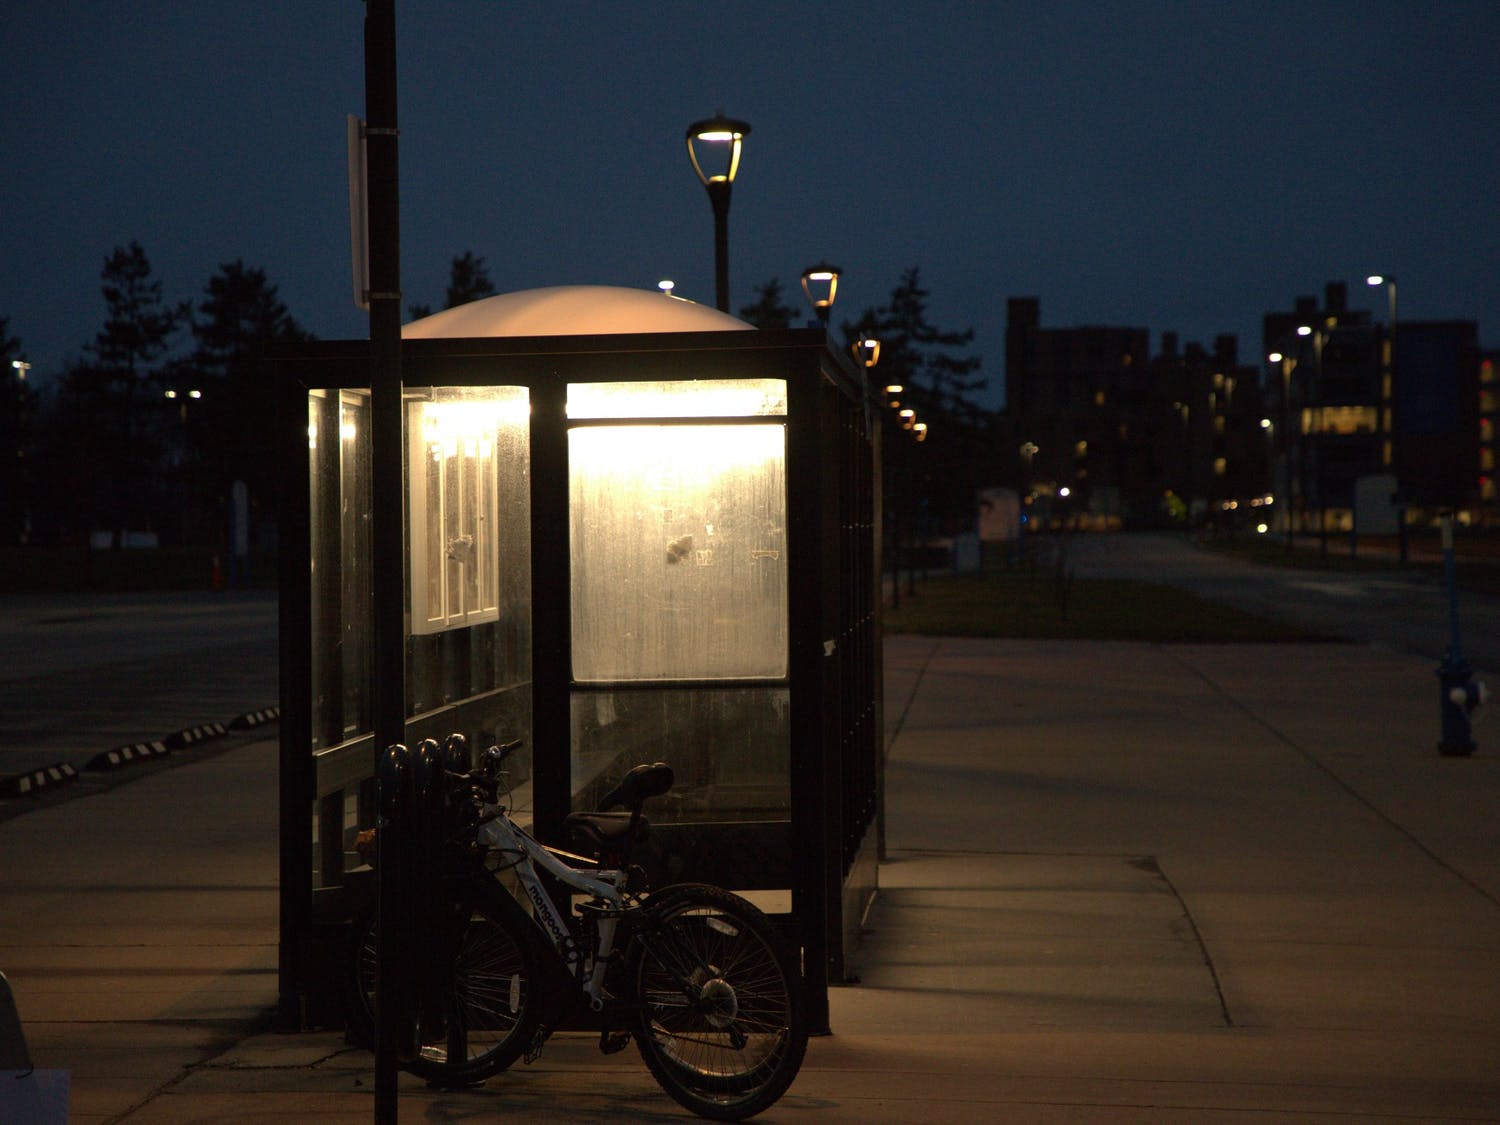 UB's once busy bus stops are now largely vacant, especially at night.